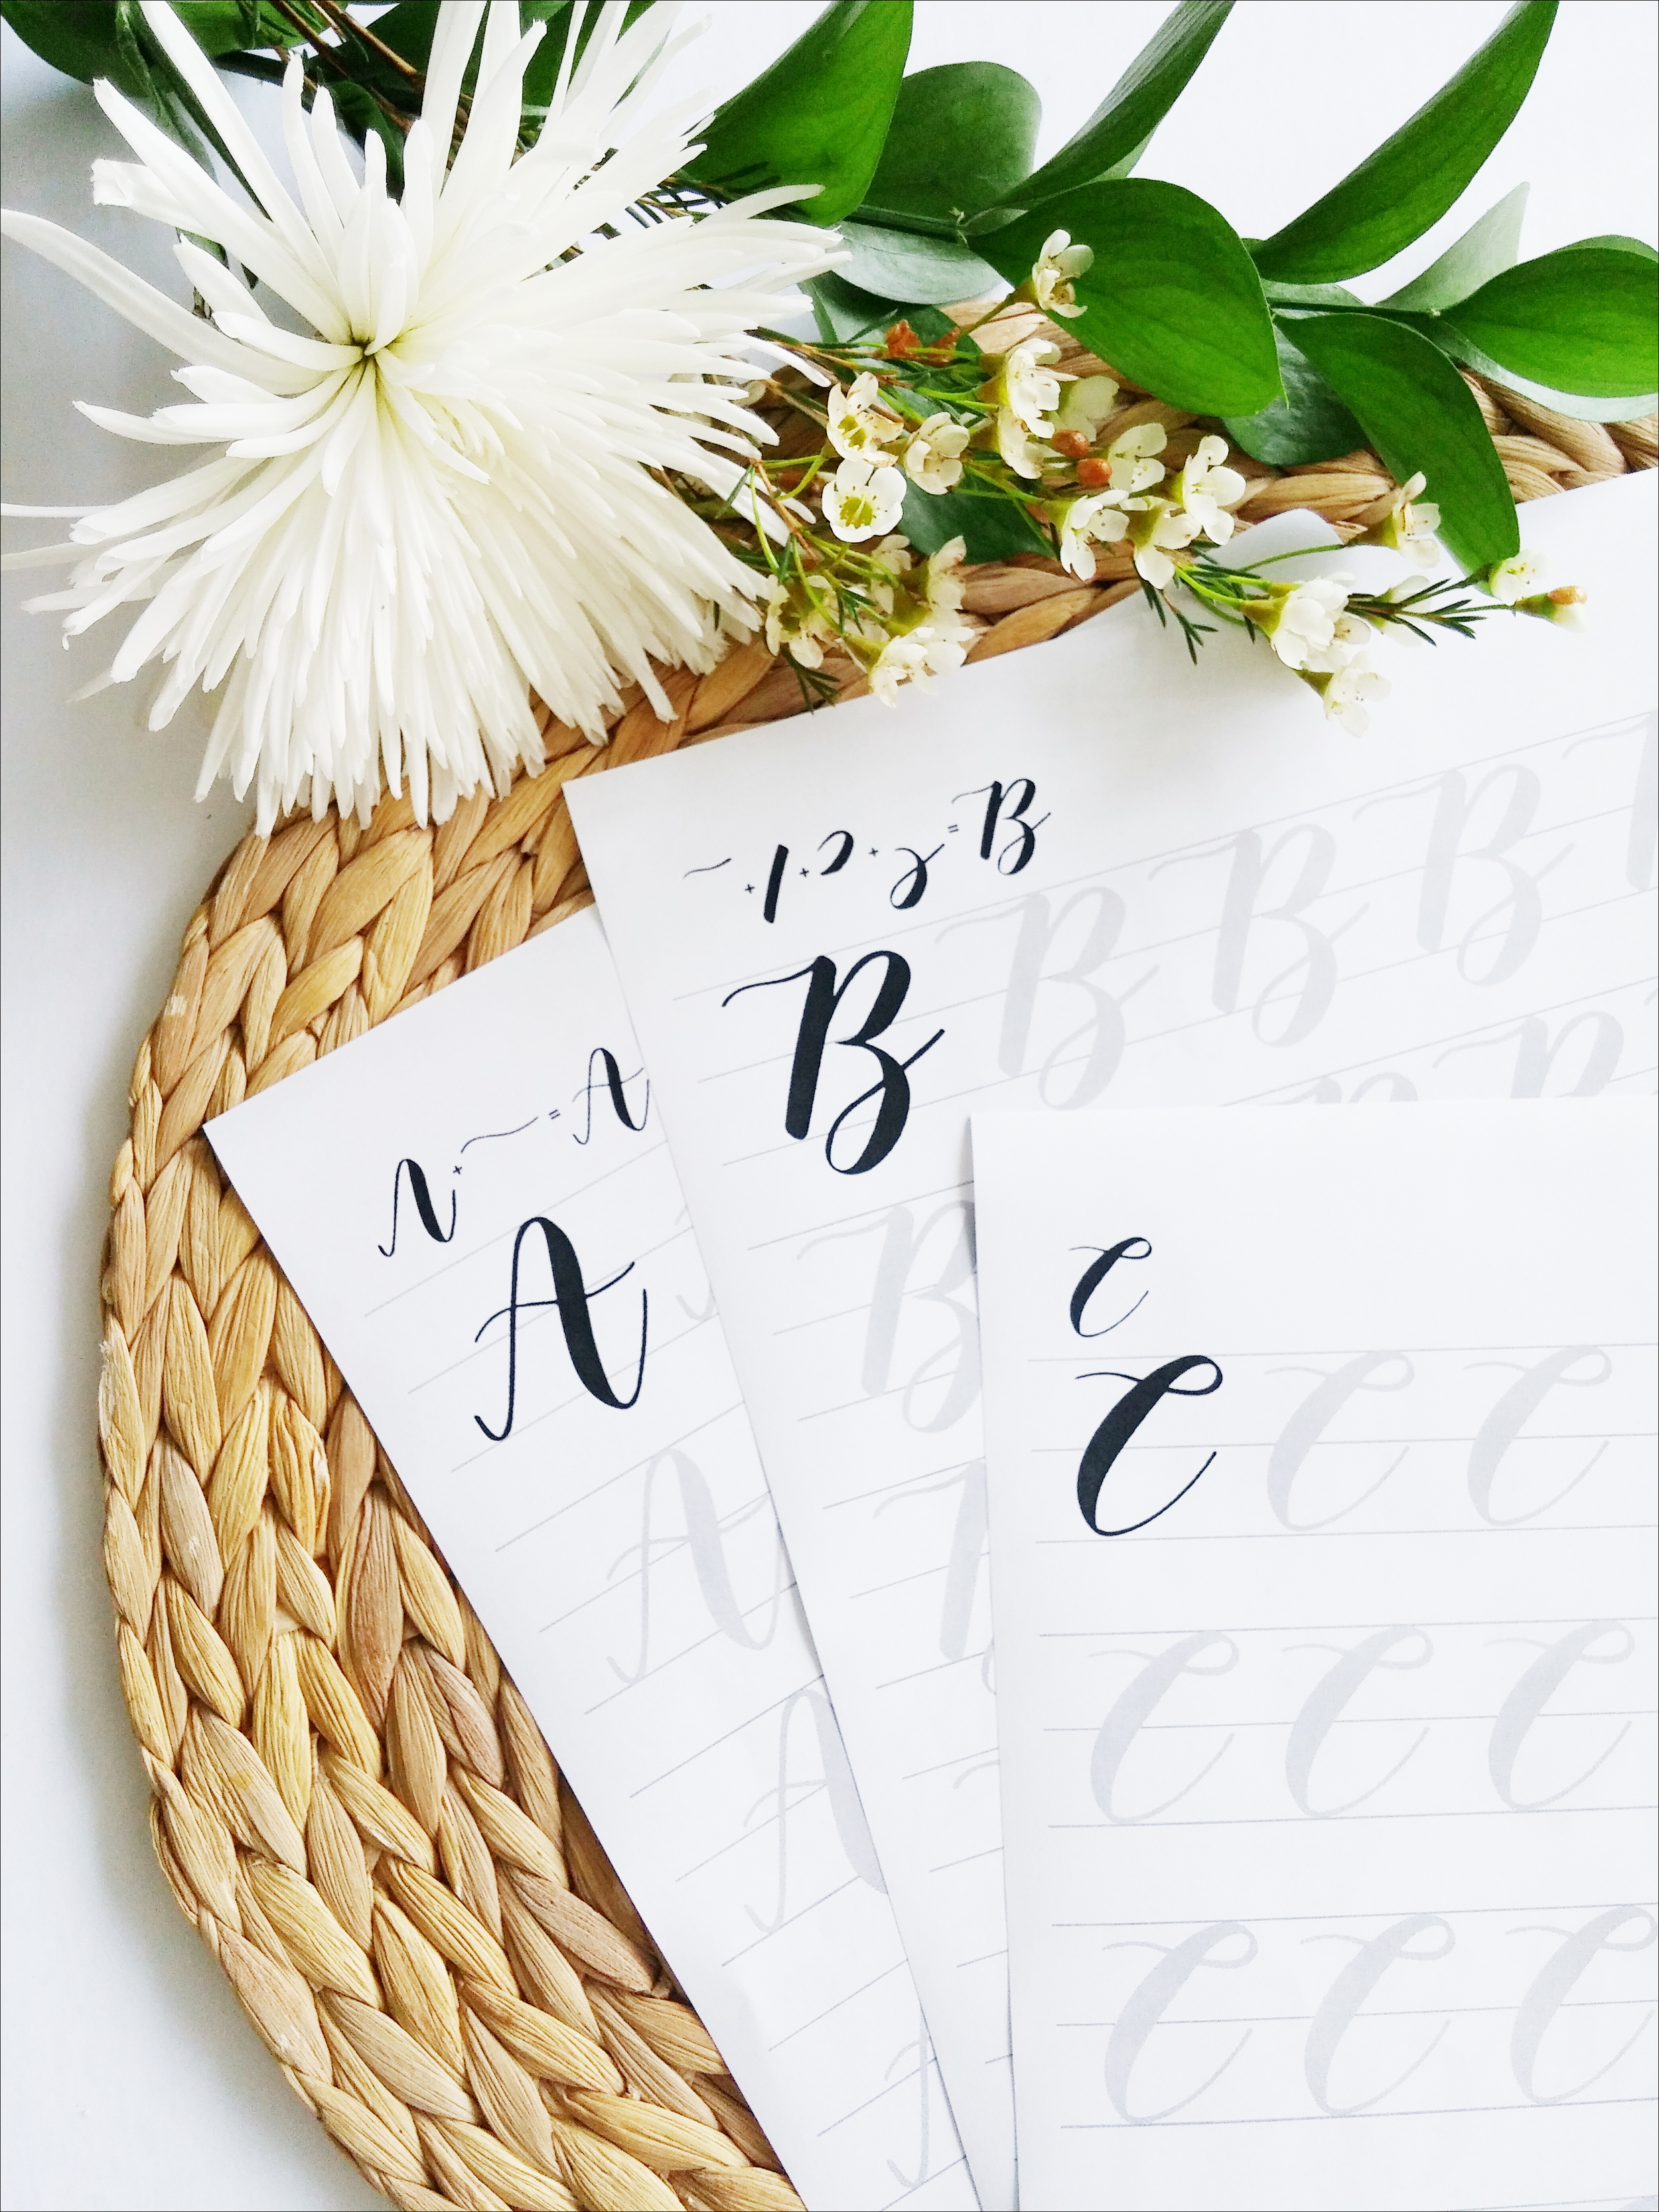 Learn_Brush_Calligraphy